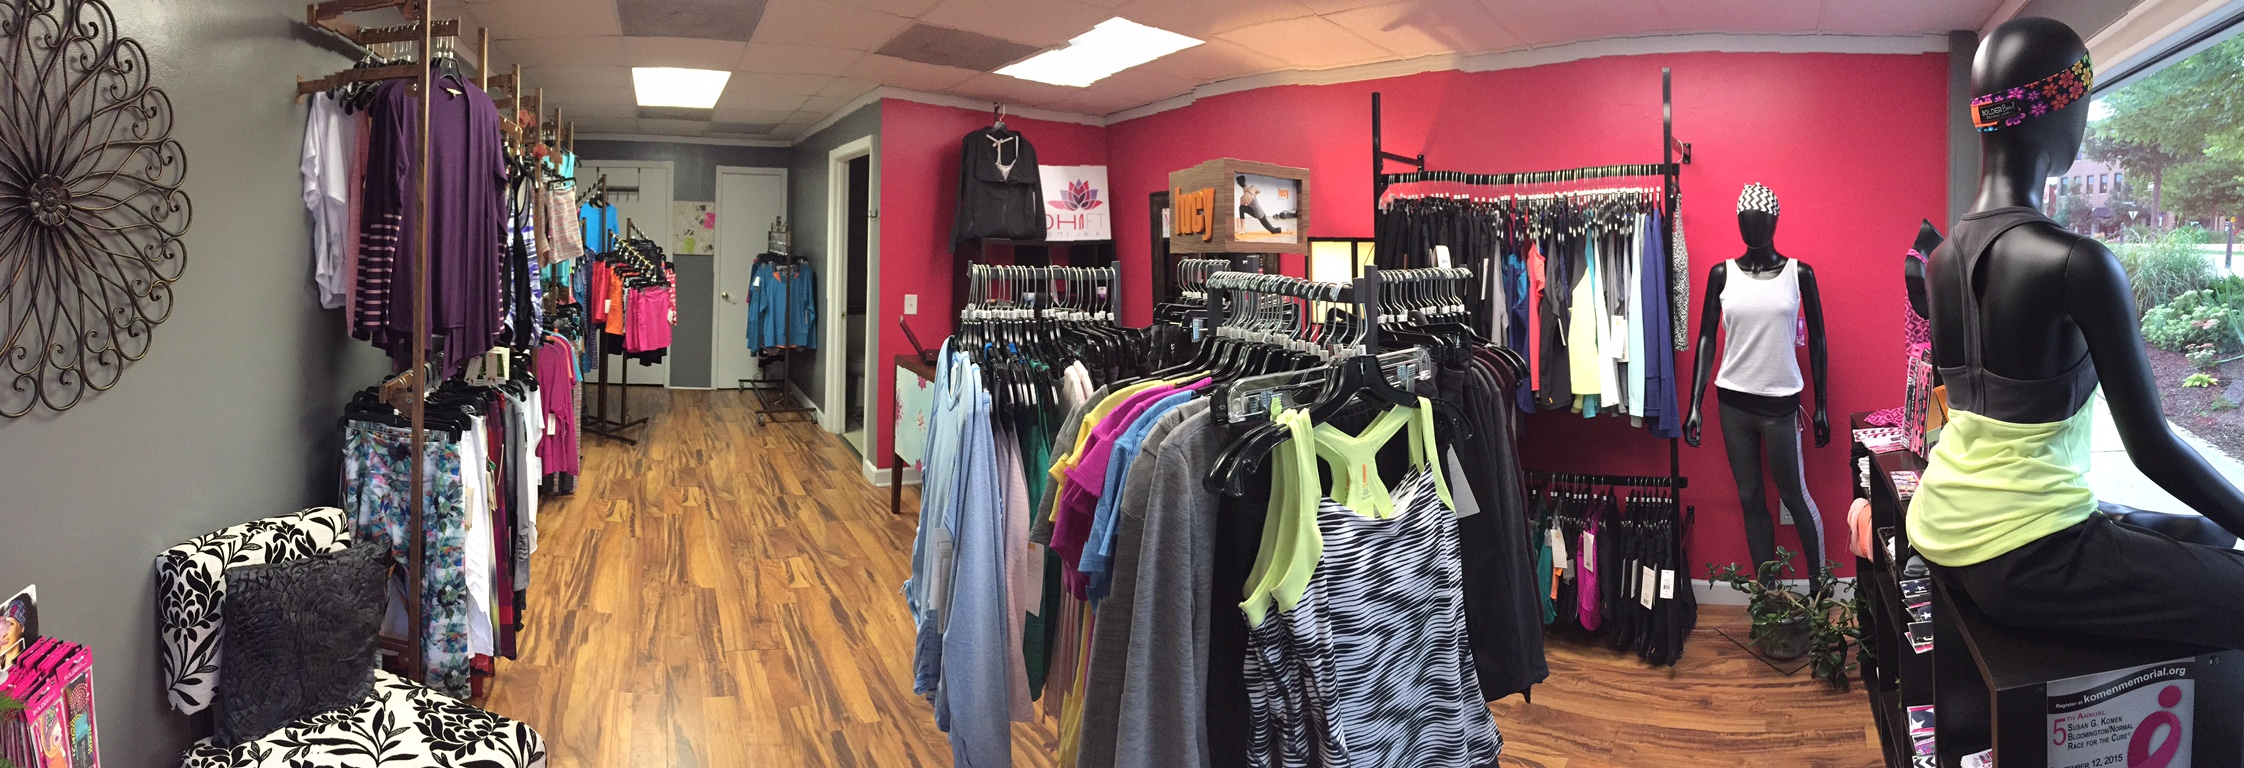 Ohmfit Activewear Store